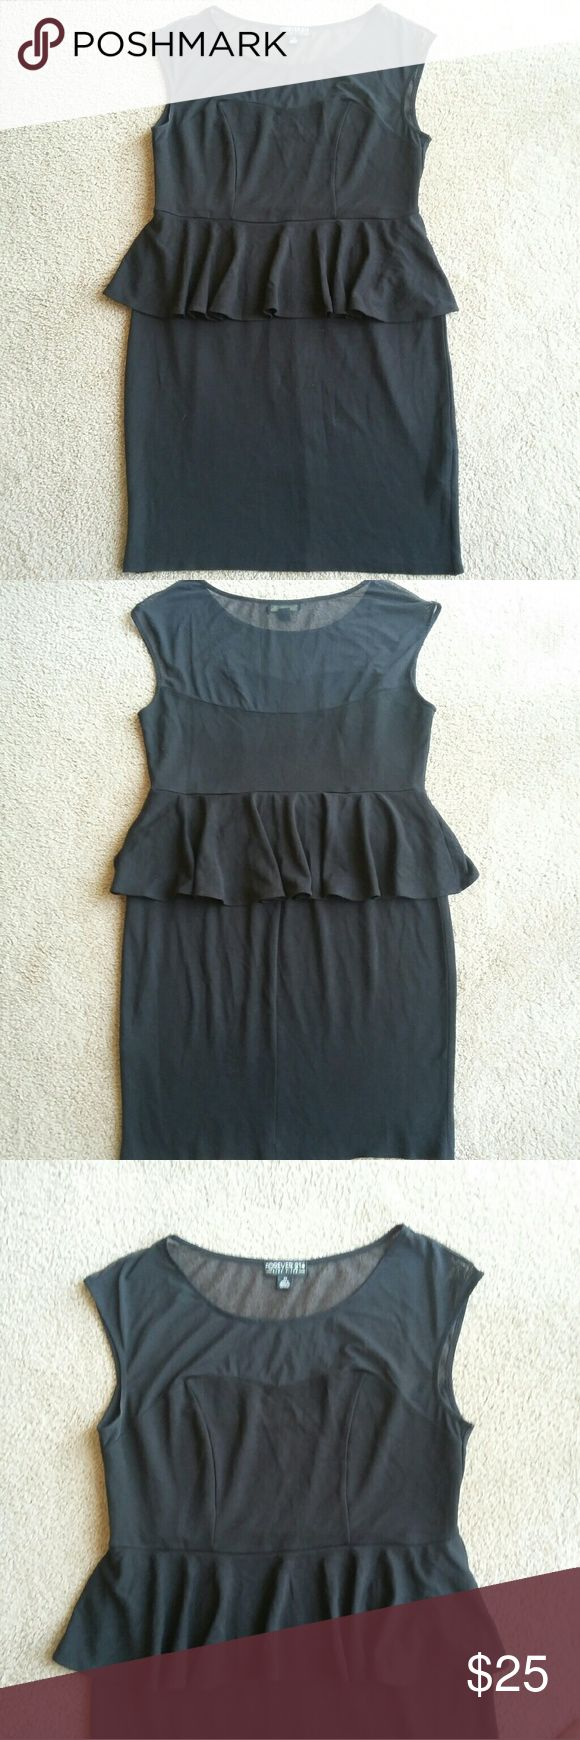 Forever 21 plus black peplum dress Forever 21 + black peplum dress Mesh top with a sweetheart neck All over stretchy material  Hits at the knee  Size: 2x Only worn once  *hemline was taken down so slightly frayed pictured Forever 21 Dresses